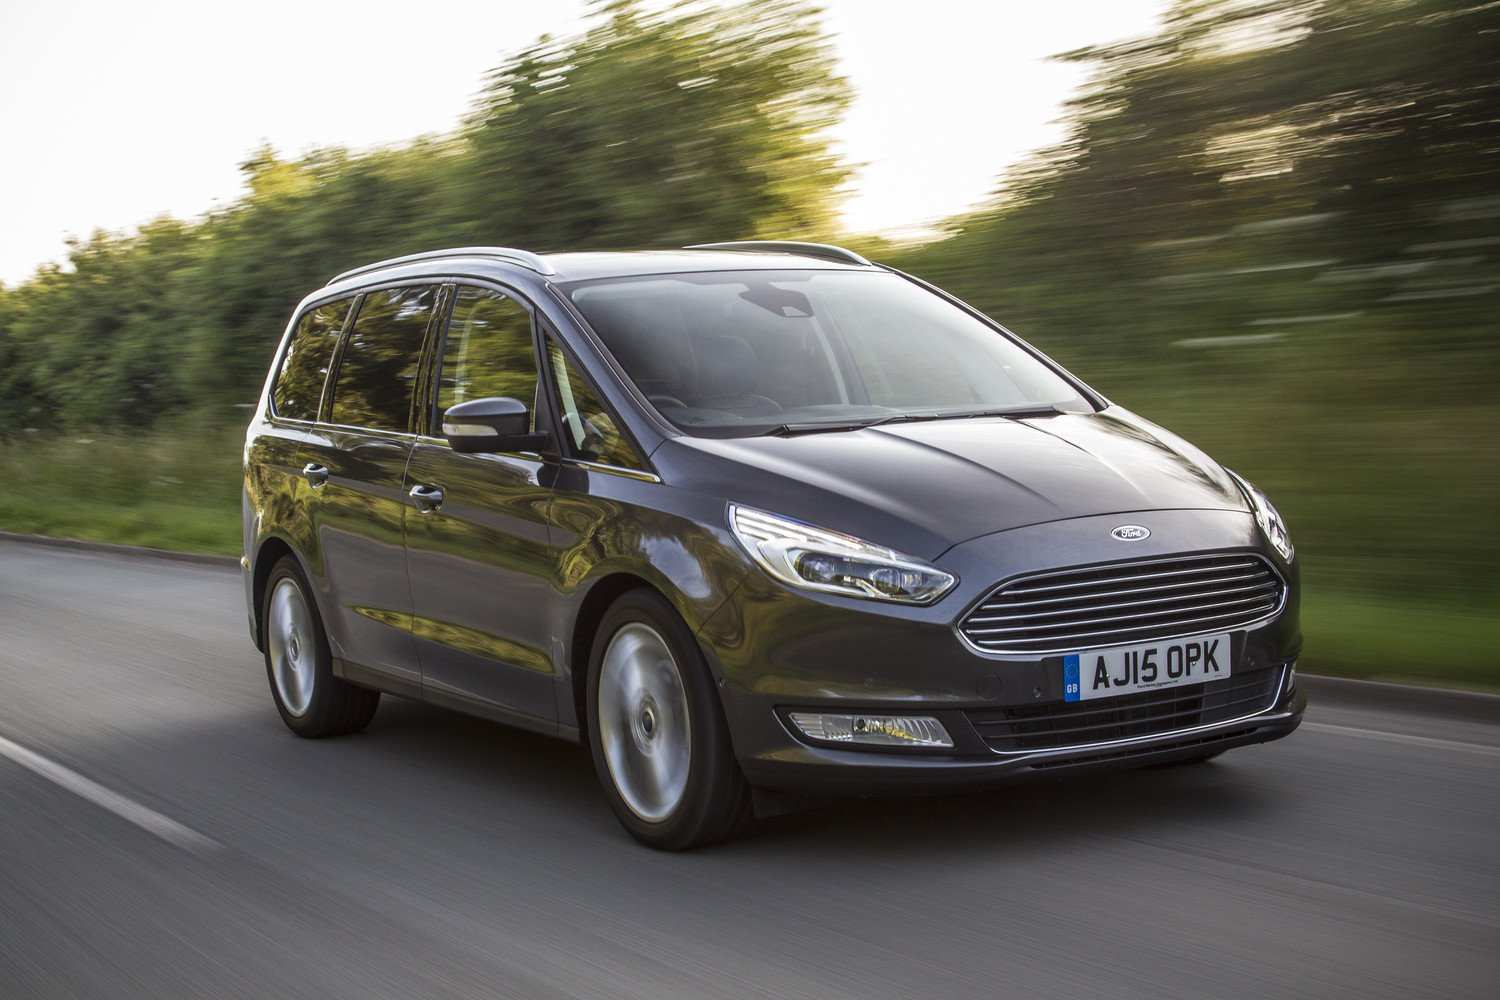 35 New 2019 Ford Galaxy Interior